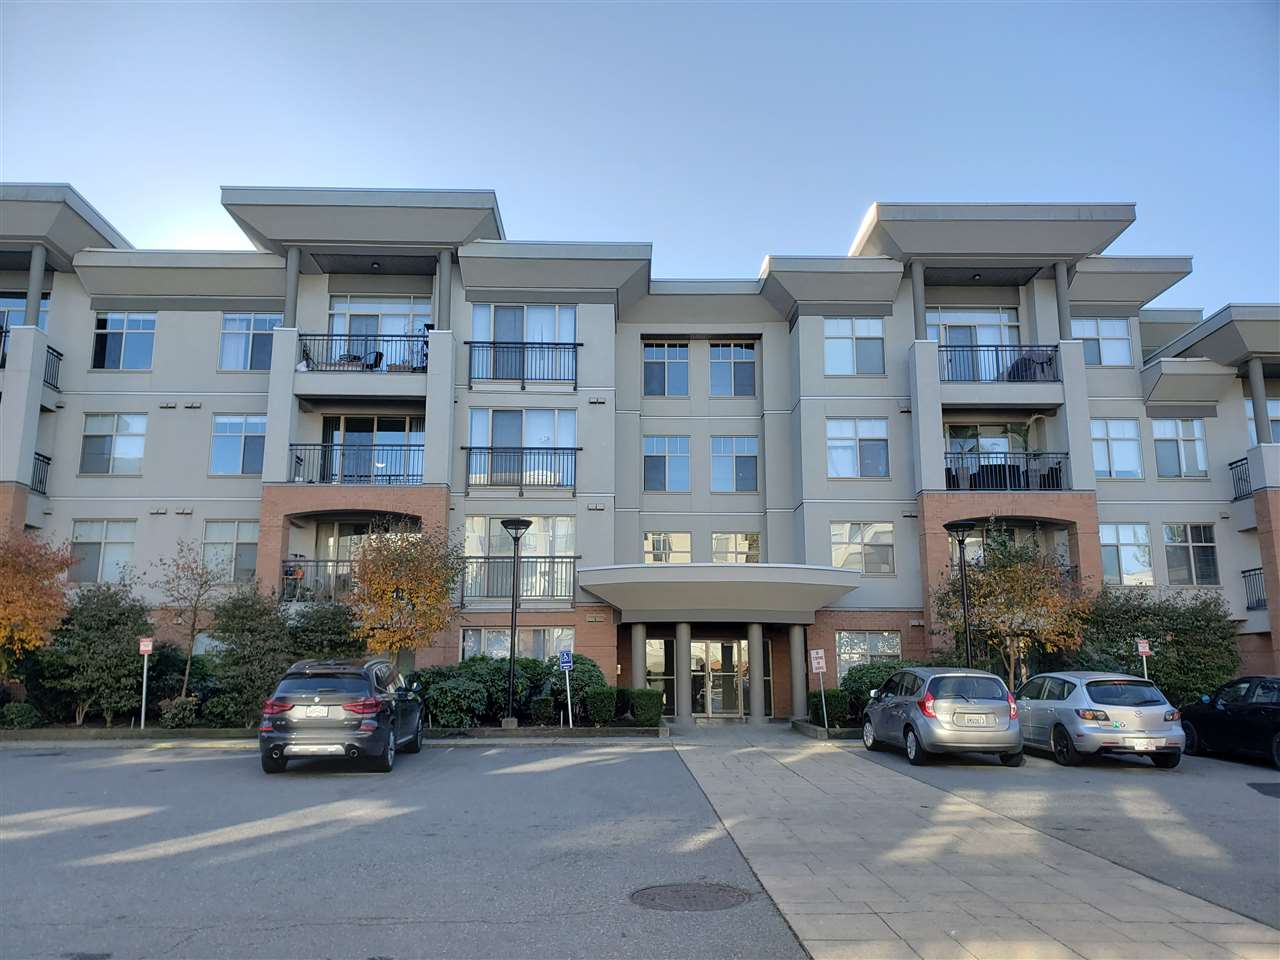 212 33545 RAINBOW AVENUE - Central Abbotsford Apartment/Condo for sale, 2 Bedrooms (R2516642) - #1